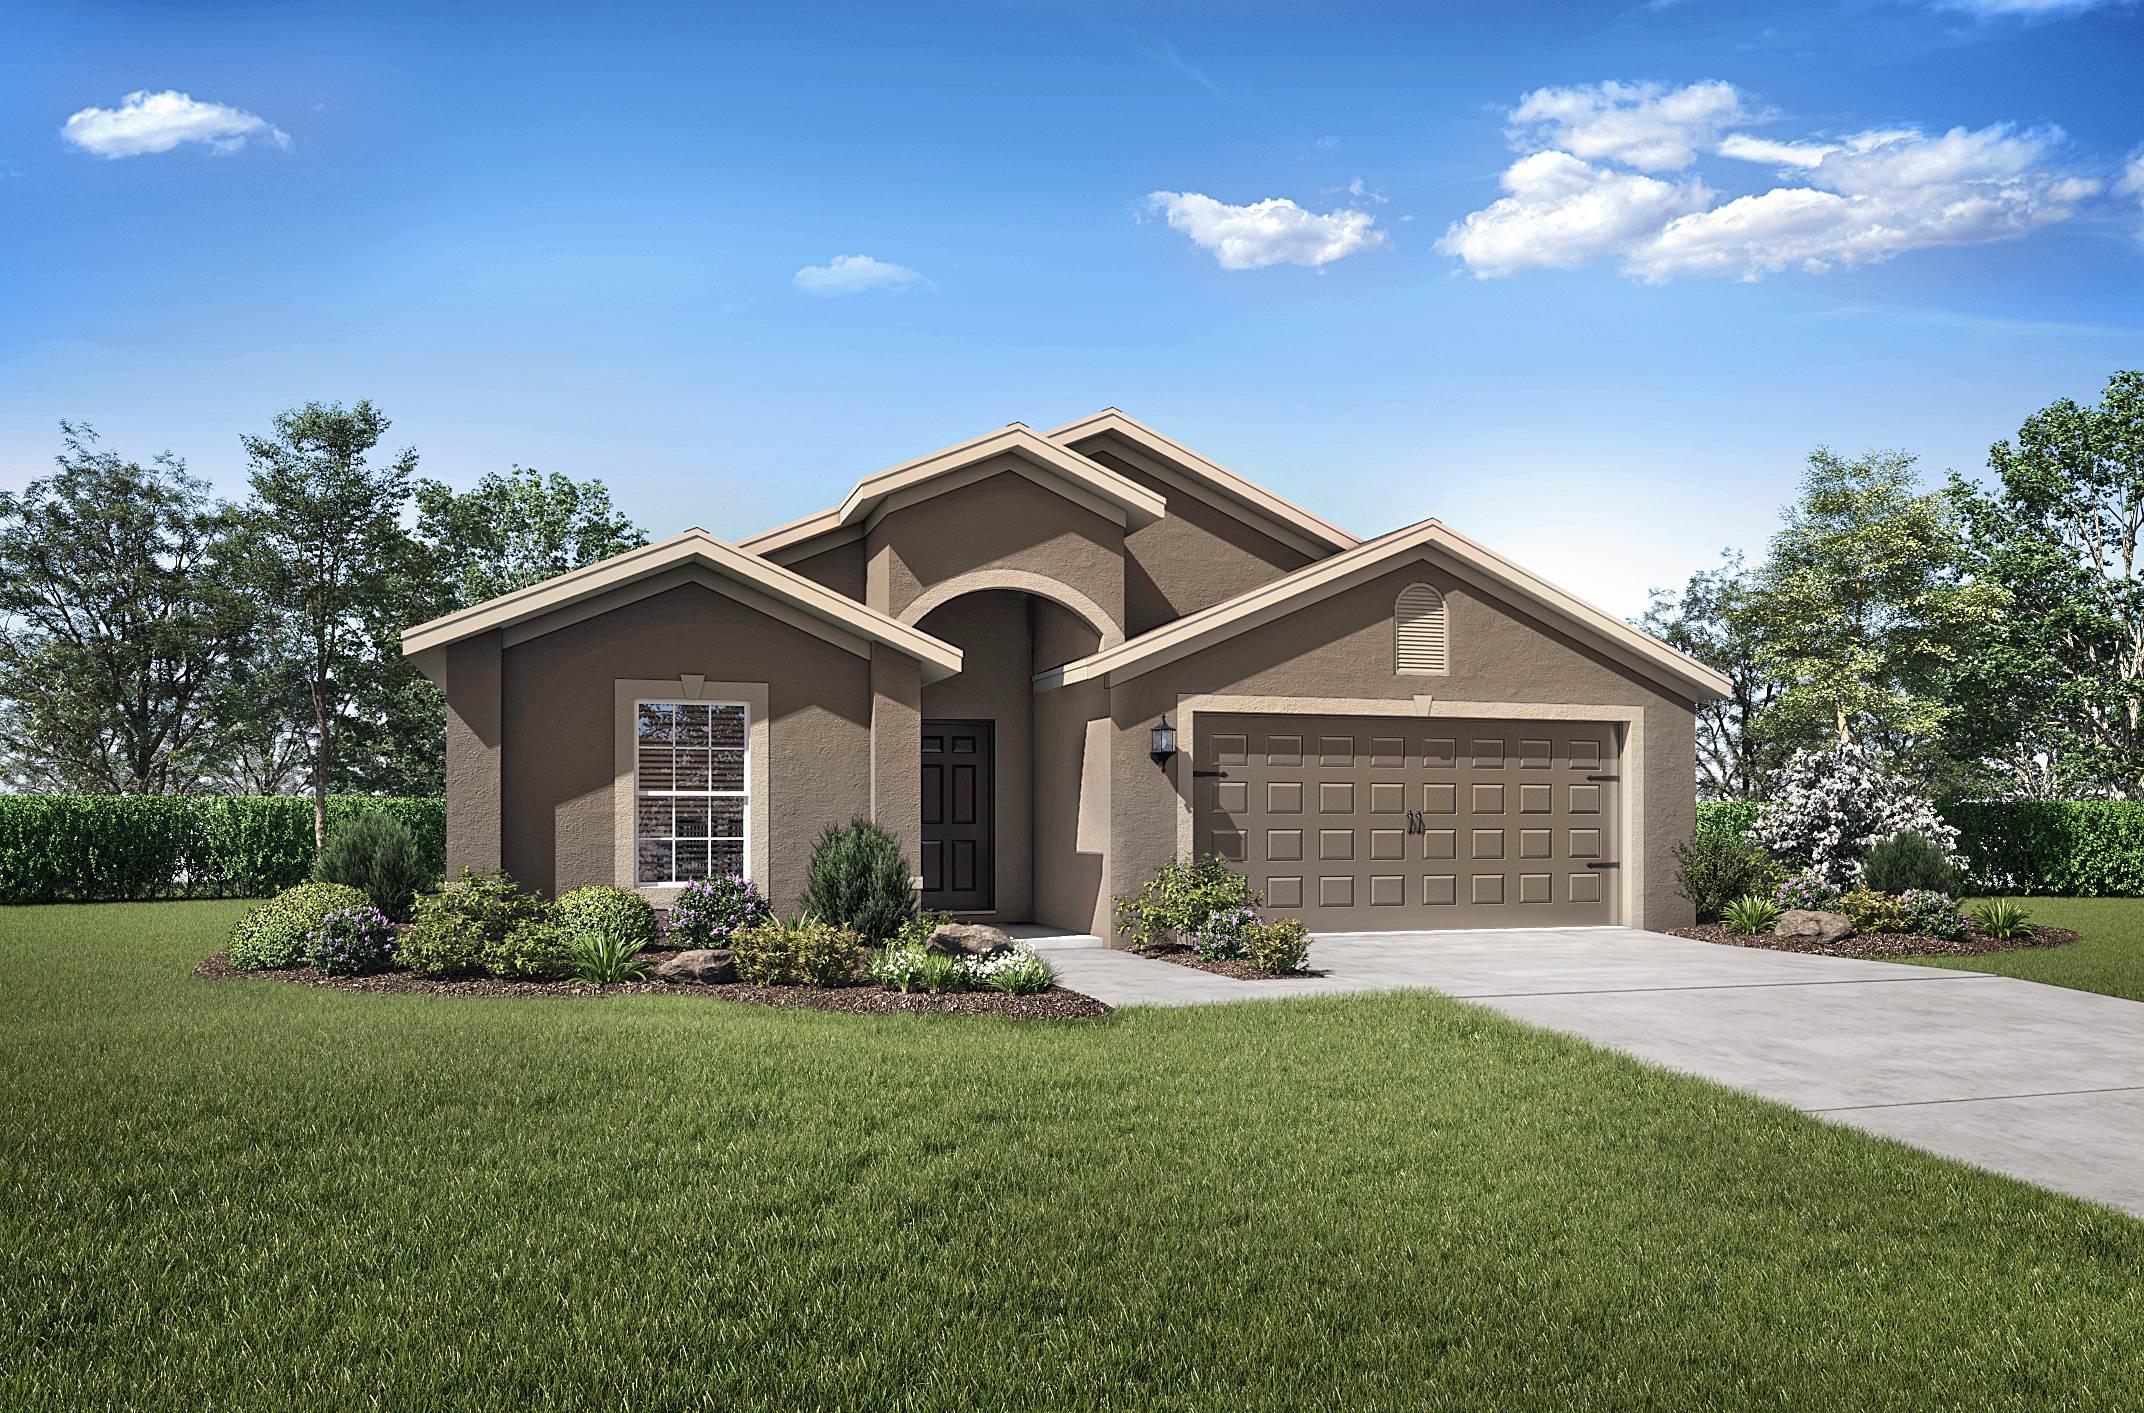 Lakeland Homes for Sale in Resort-Style Community